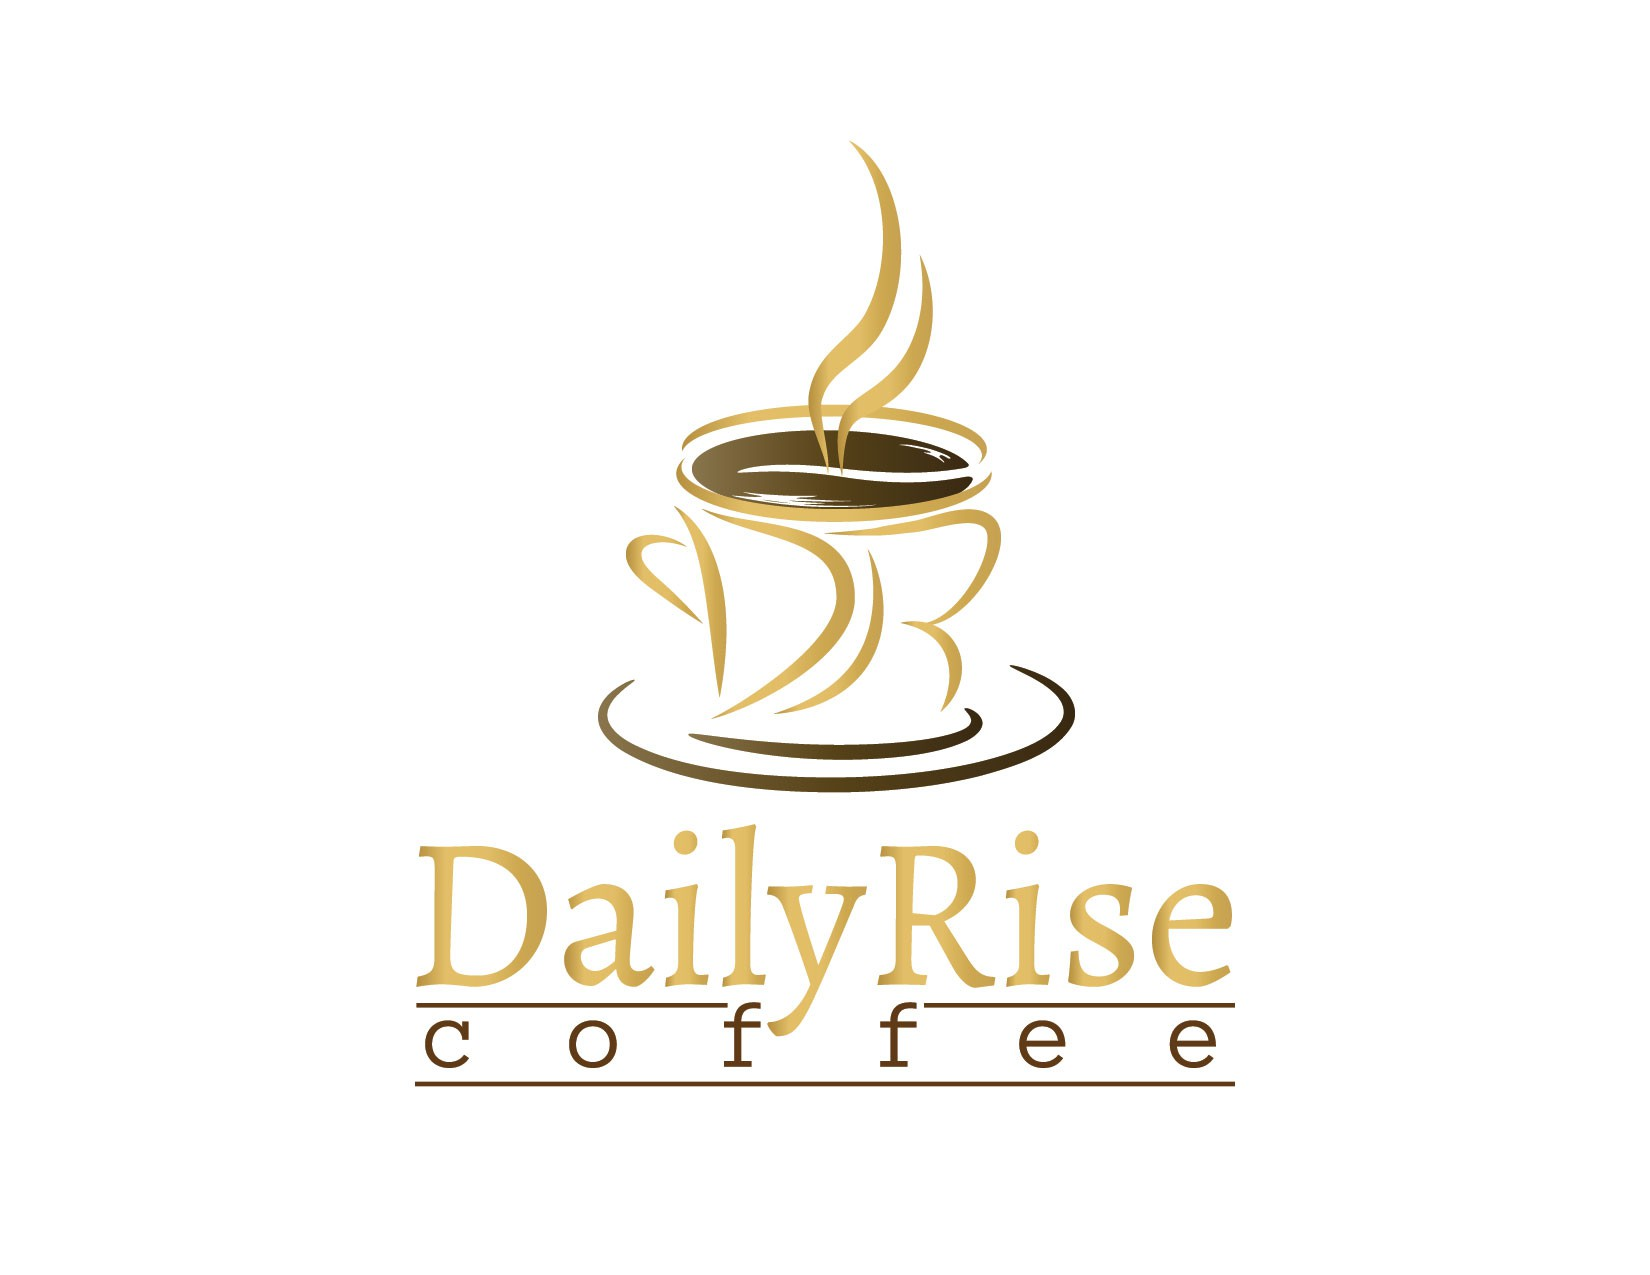 Help Daily Rise Coffee with a new logo